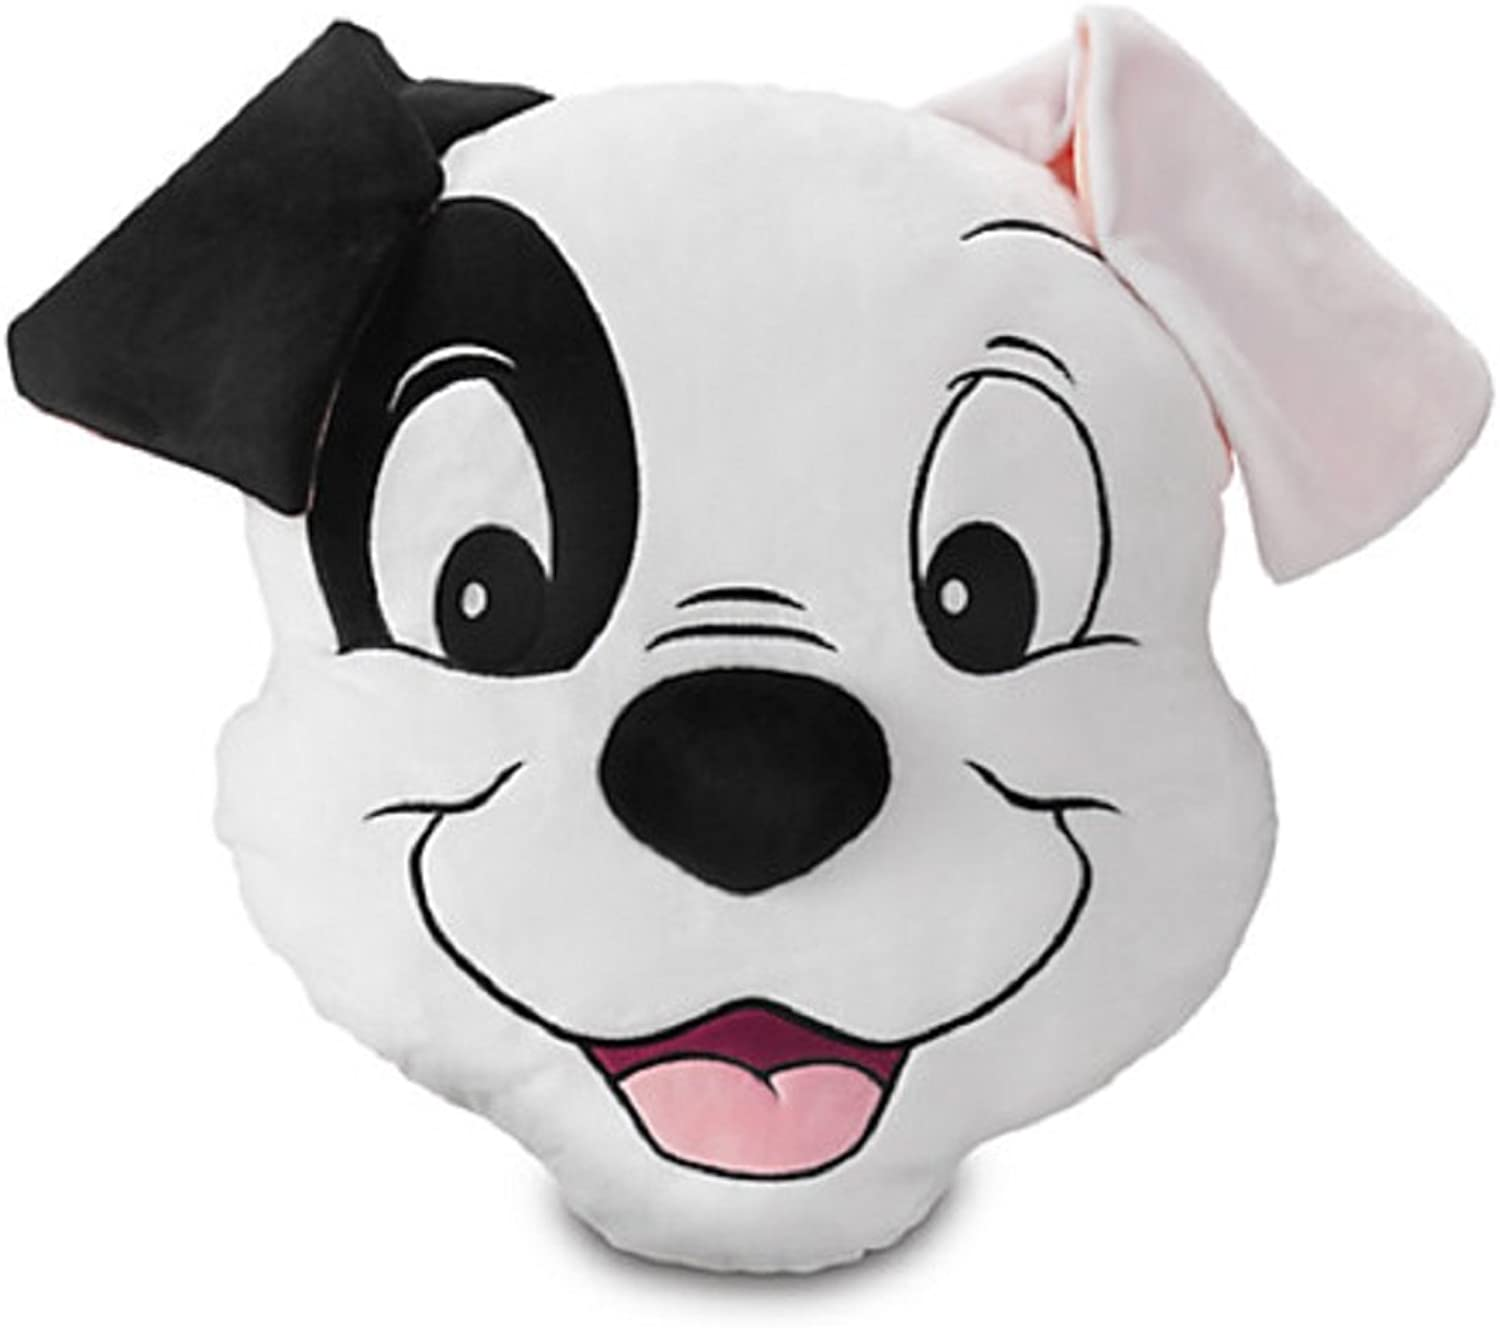 Disney -Patch Plush Pillow - 101 Dalmatians - 15'' - New